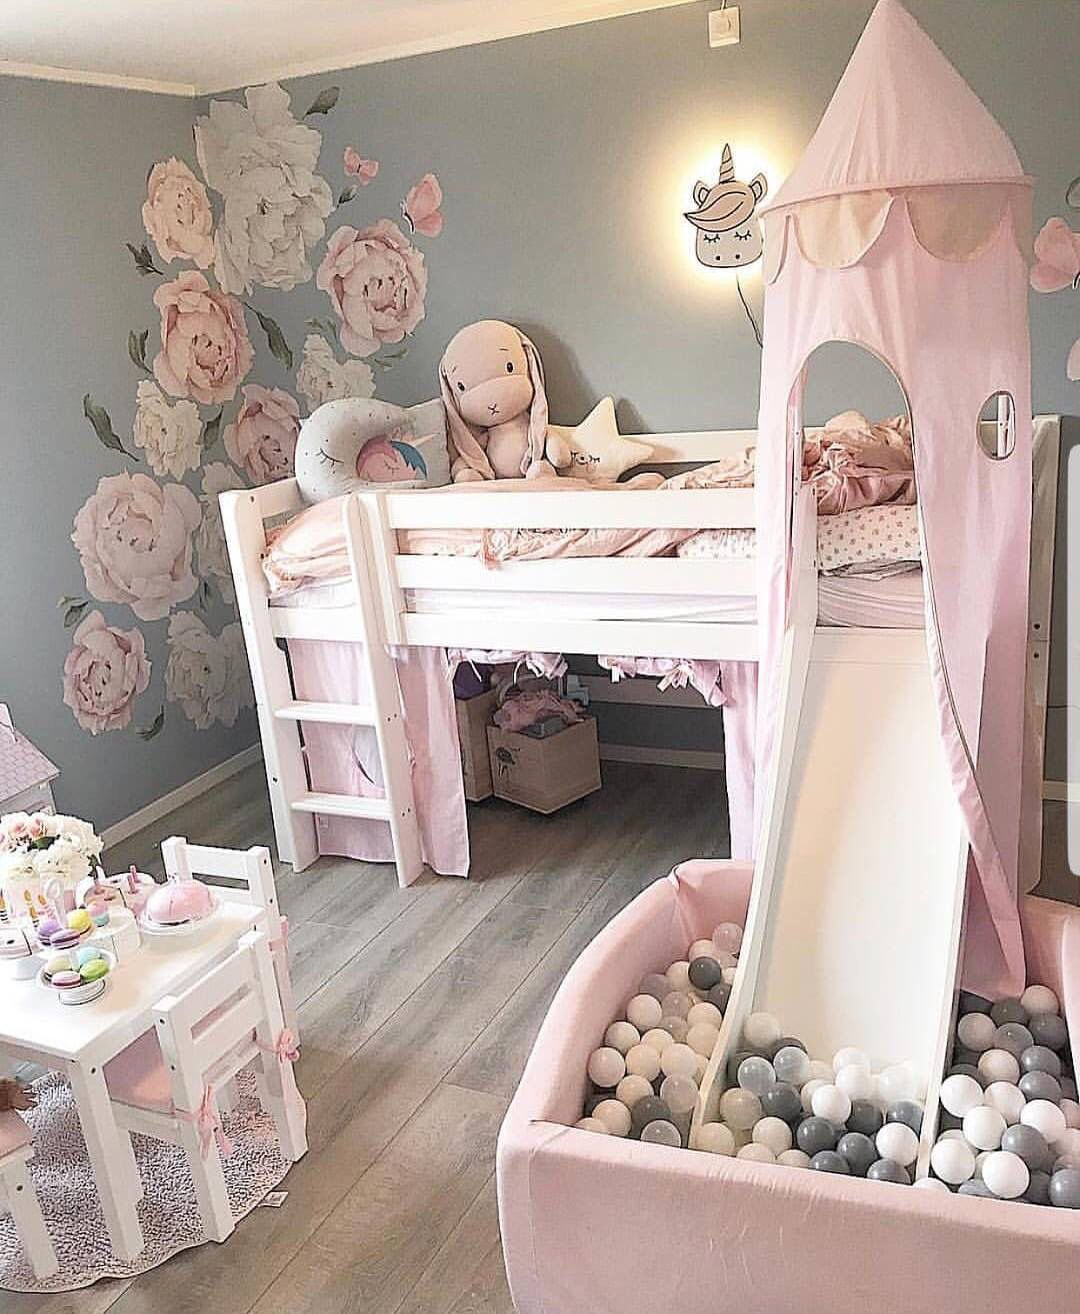 Pin By Roberta Gestra On Cameretta In 2019 Girl Room Little